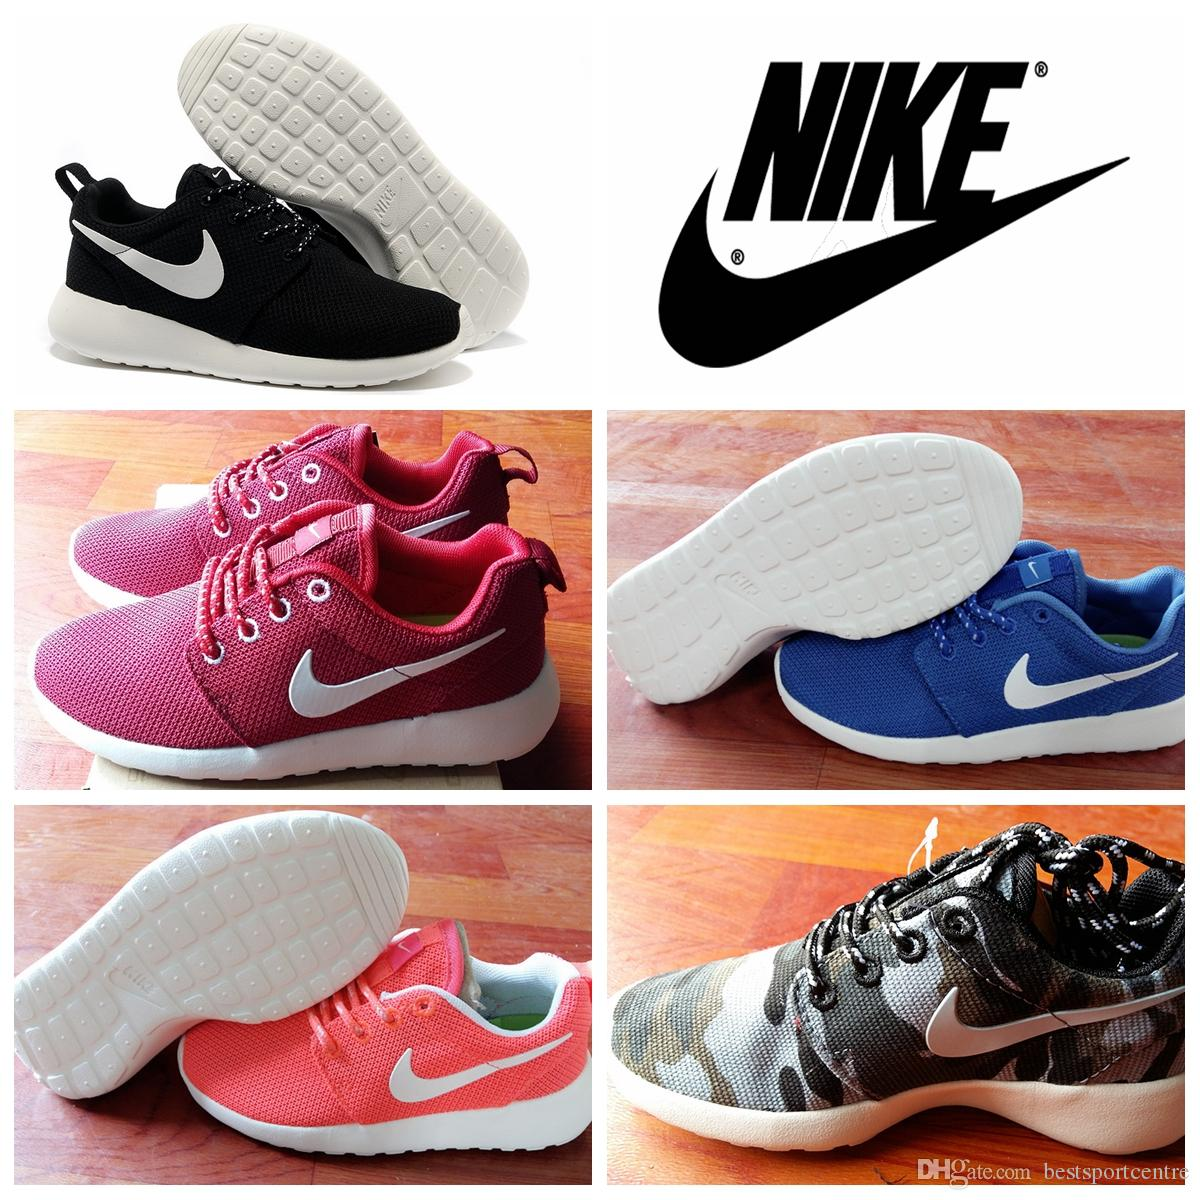 2016 Nike Roshe Run Children'S Shoes Boys And Girls Running Shoes Kids  Casual Boots Nike Roshes Runs Babys Athletic Sneakers Sport Shoes Kids  Running Gear ...